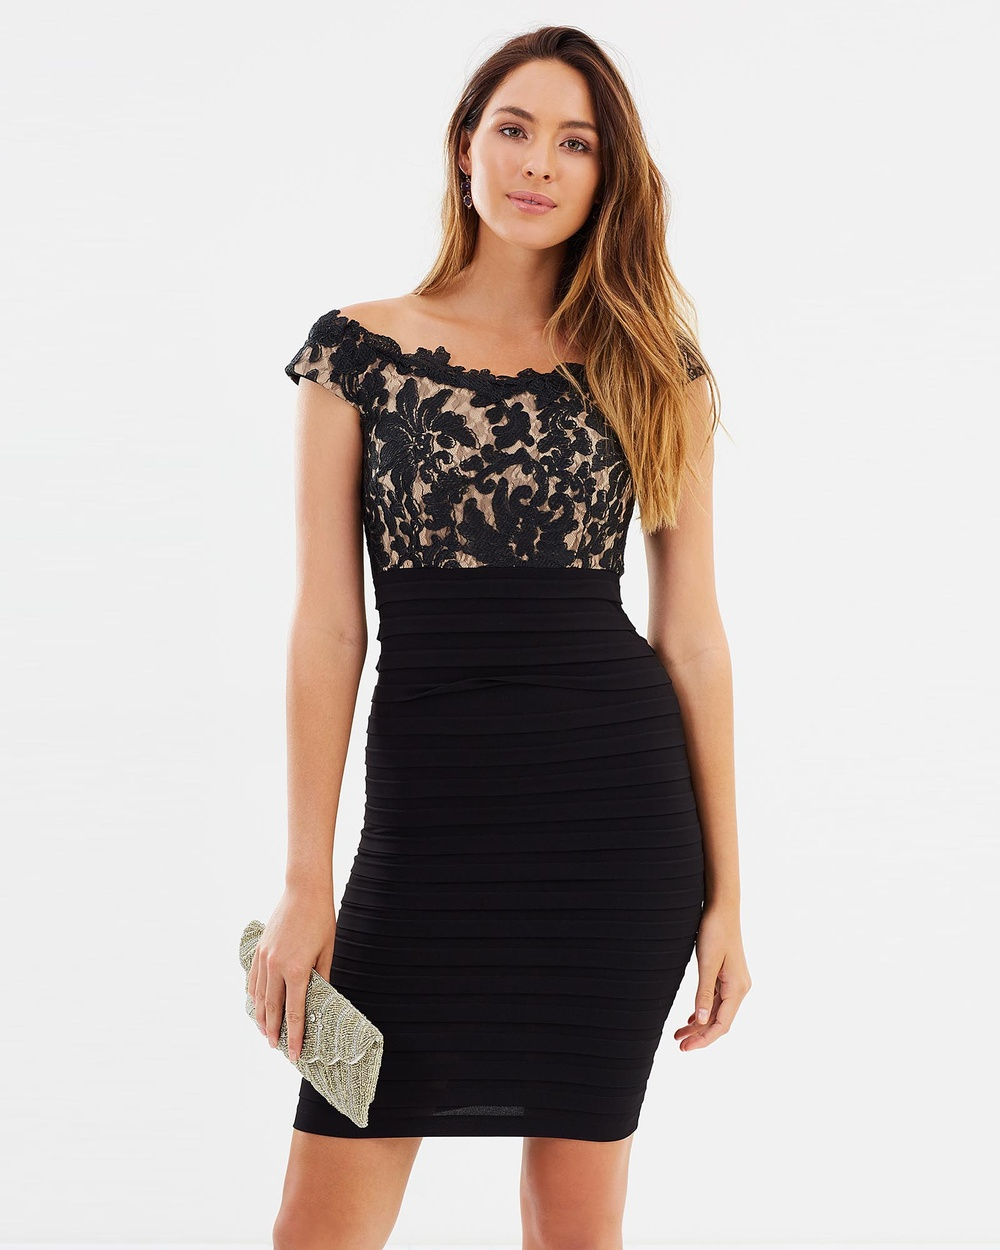 Montique Abigail Lace Dress Bodycon Dresses Black Abigail Lace Dress